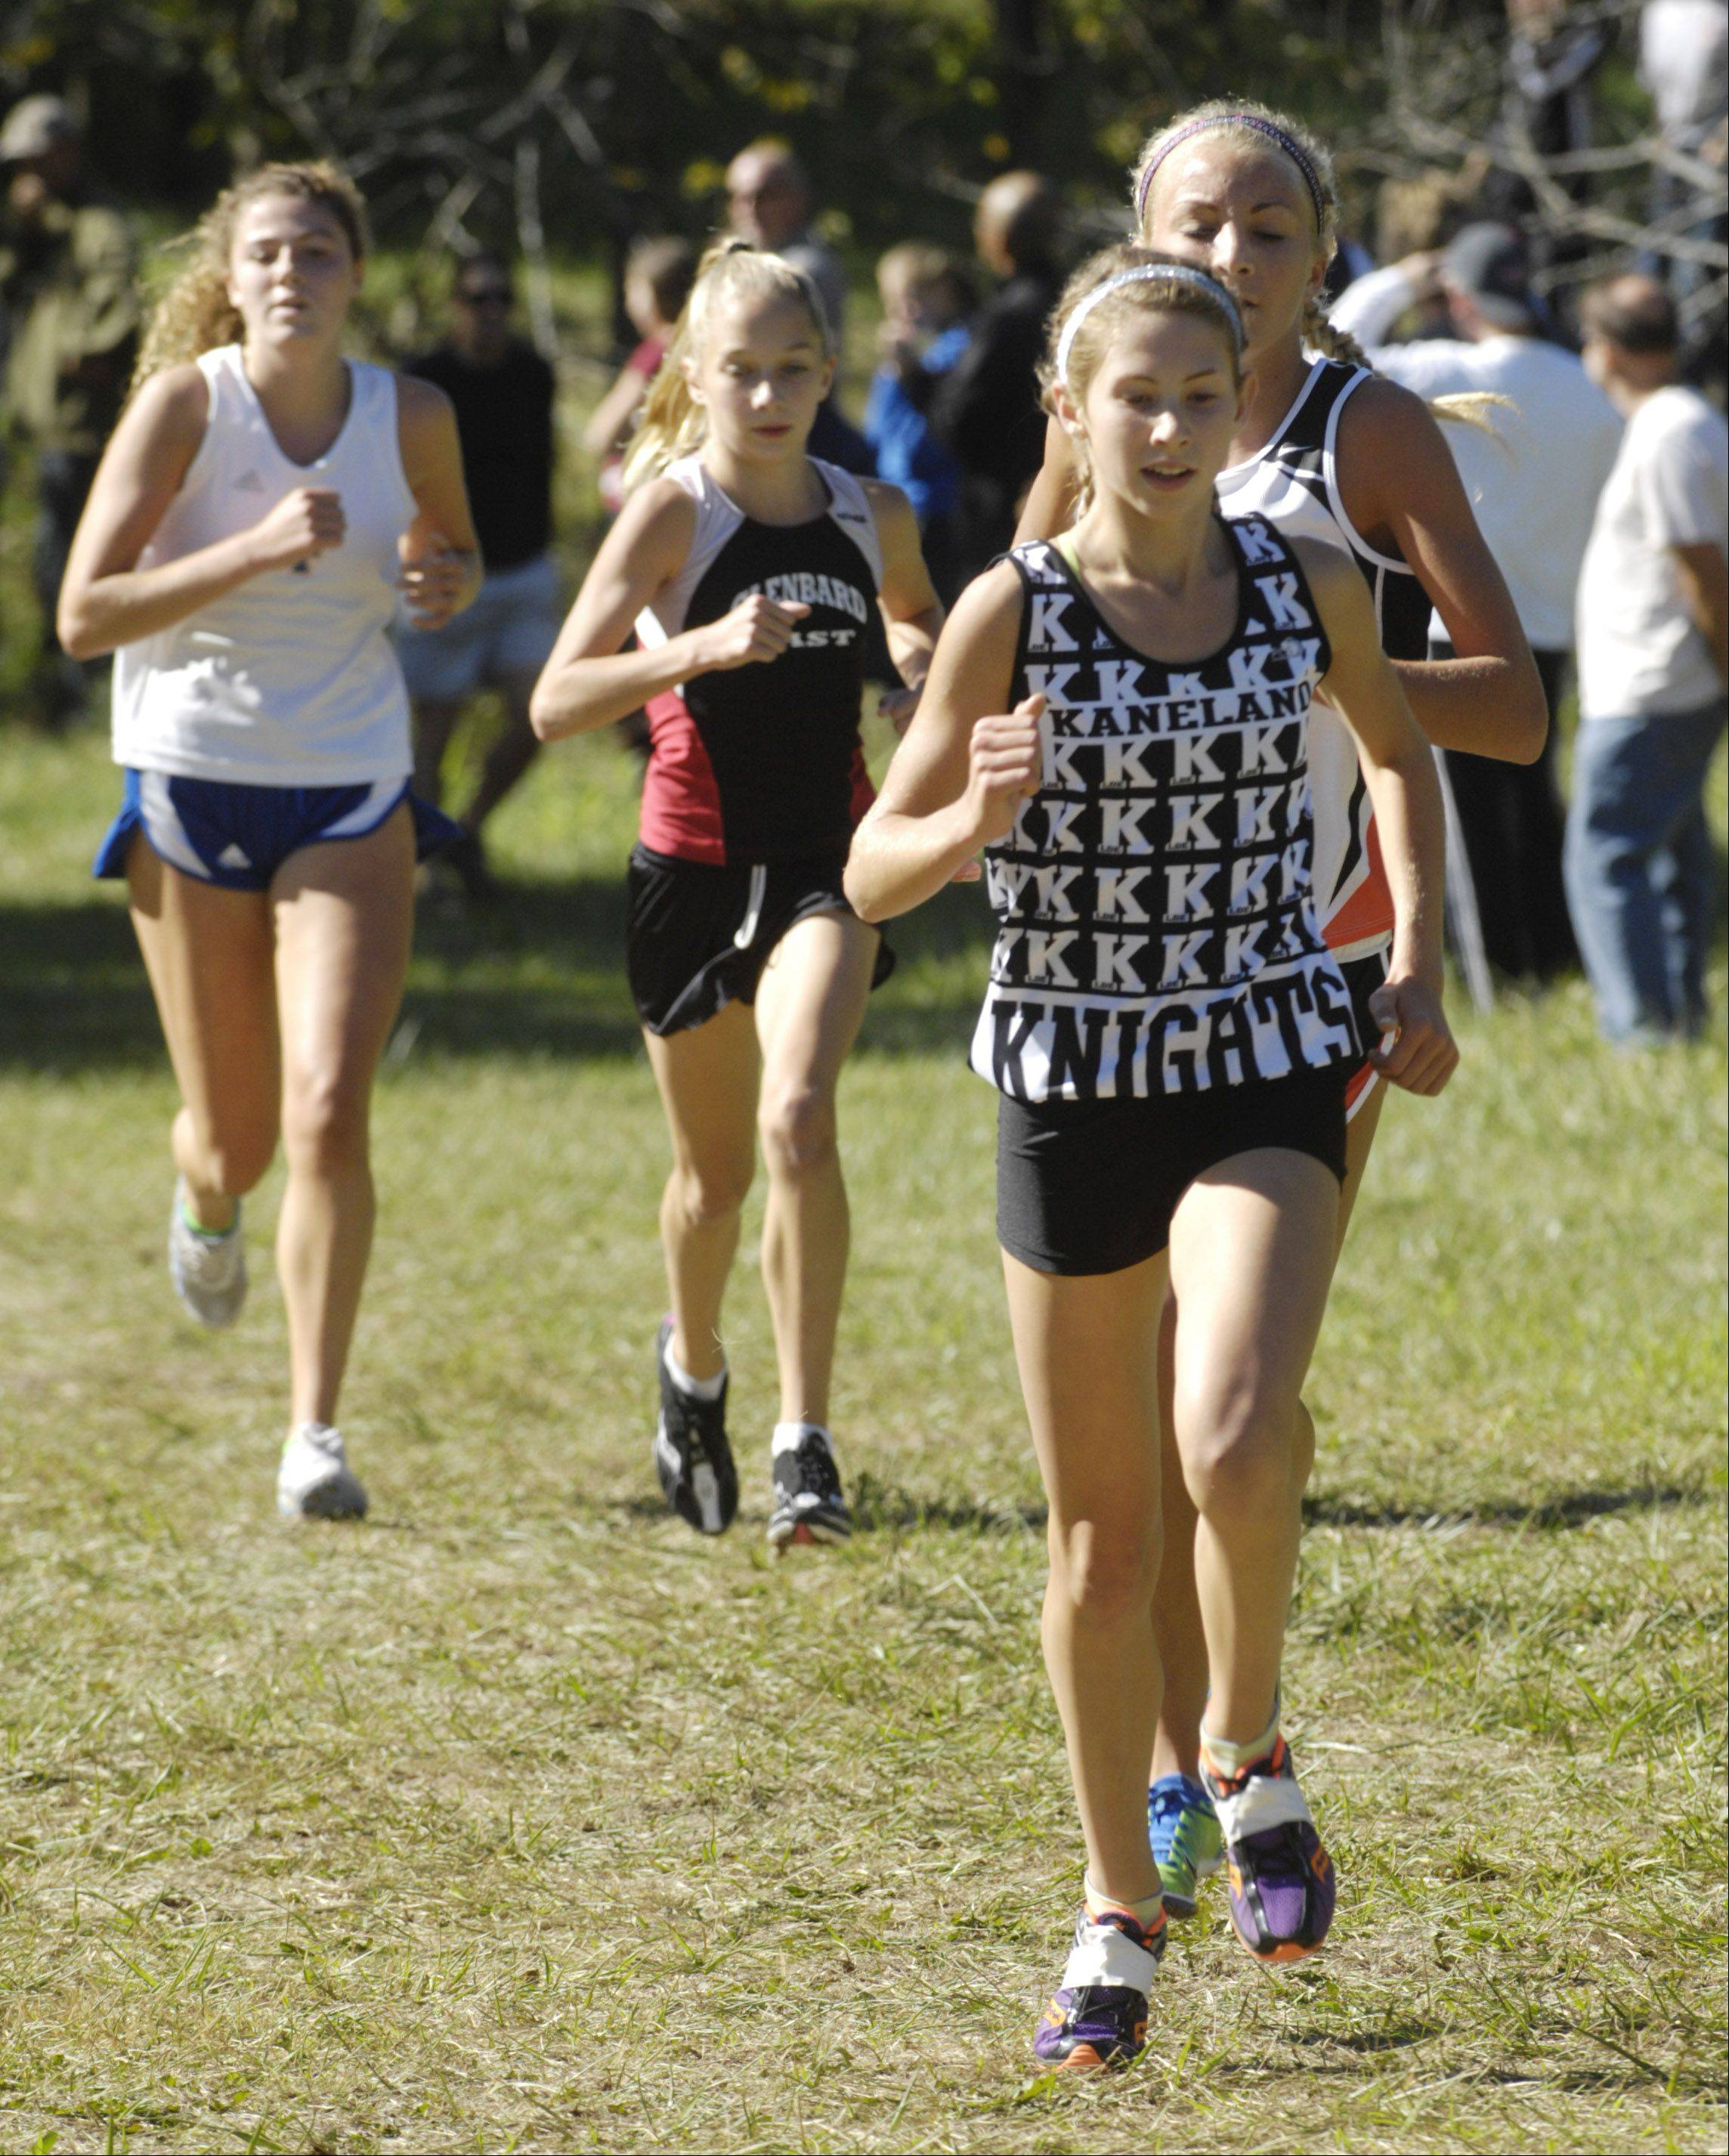 Kaneland's Victoria Clinton, who finished second, has a slight lead on Crystal Lake Central's Sami Staples, who finished first, during the Wauconda cross country invitational at Lakewood Forest Preserve Saturday.